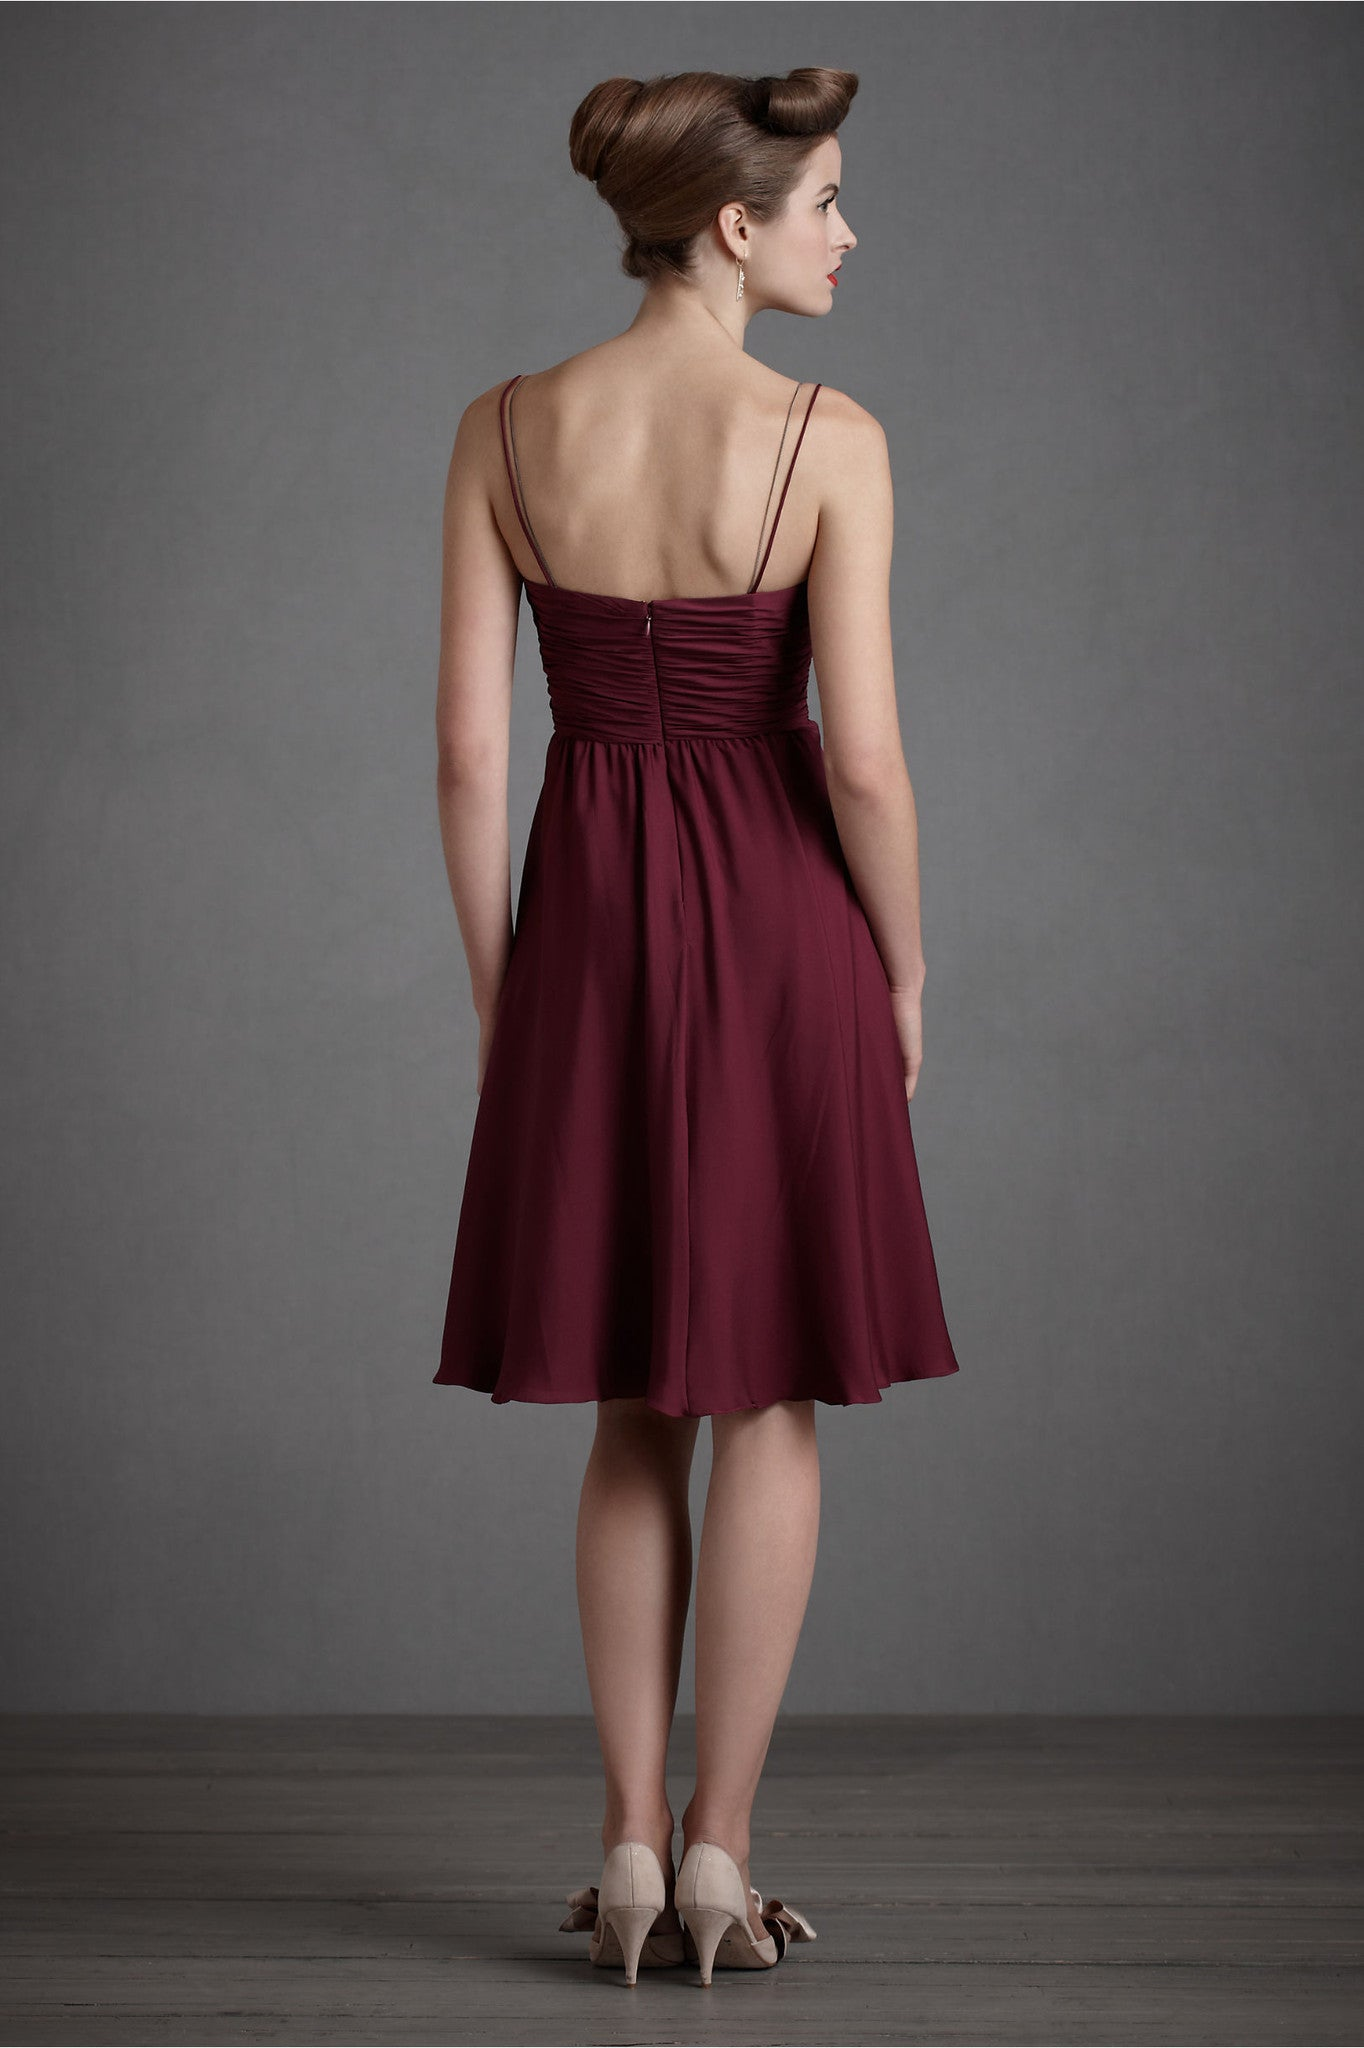 Couplet Dress - Berry